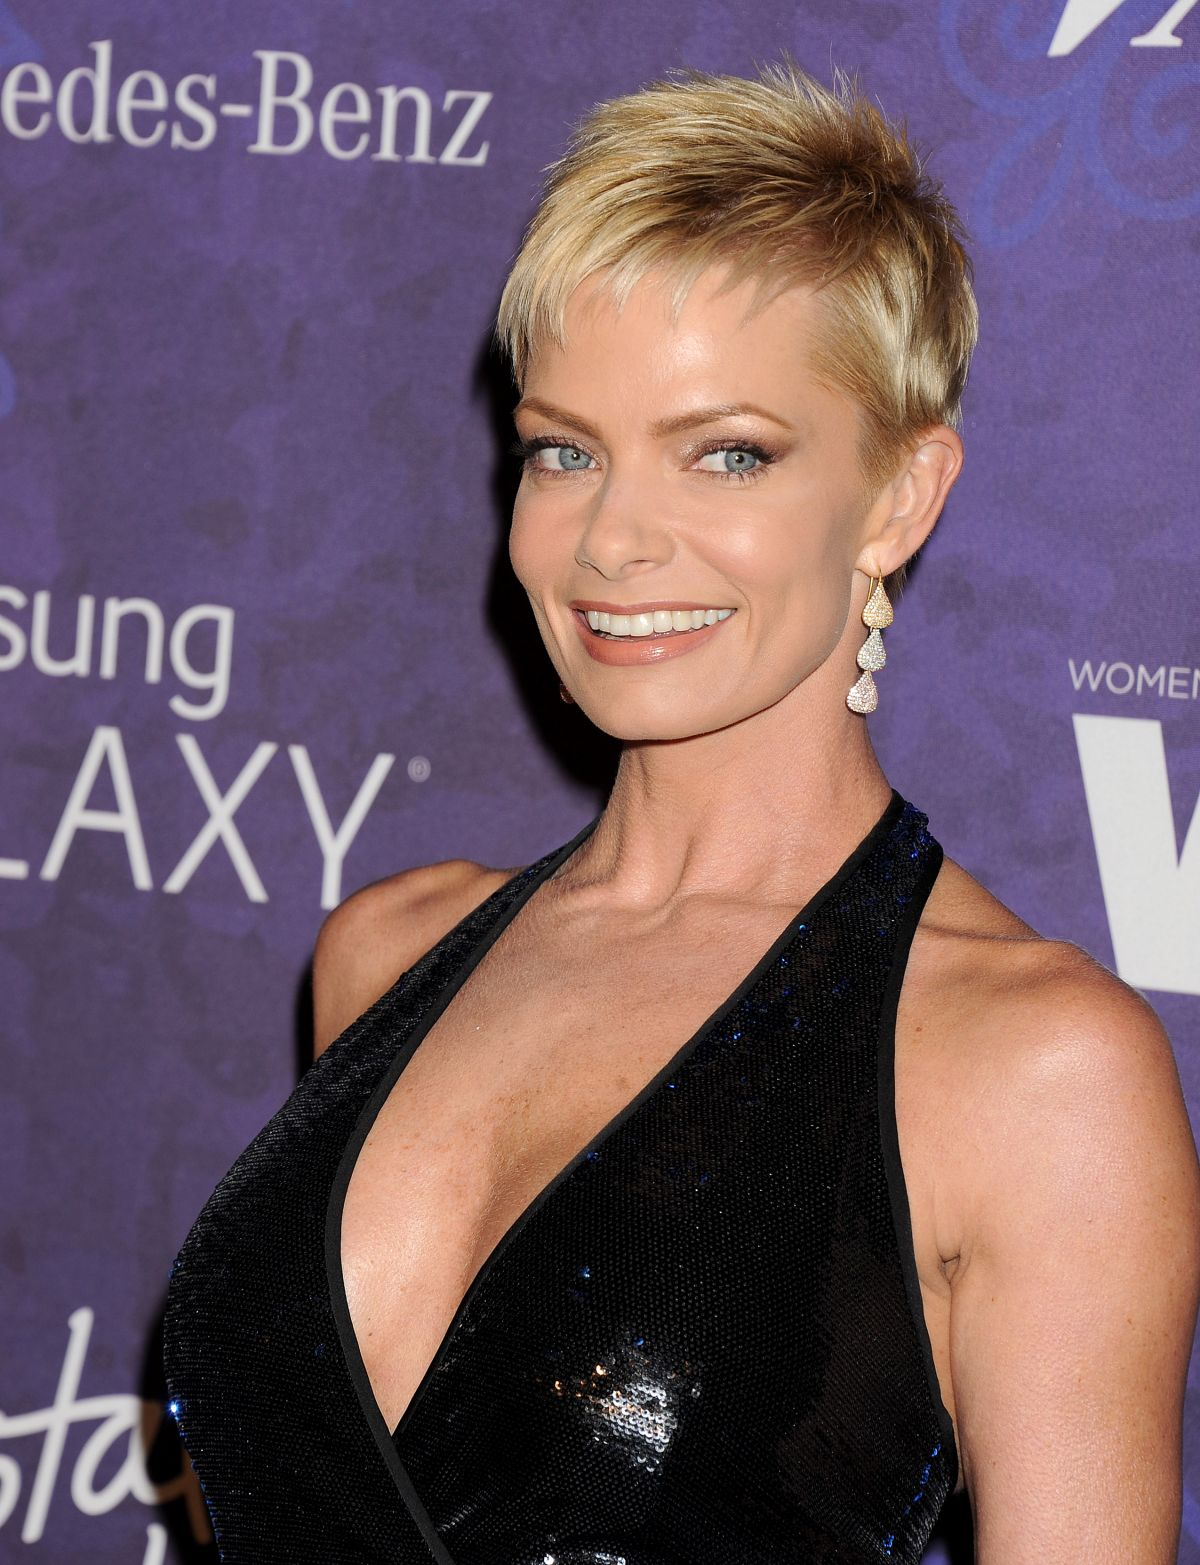 jaime pressly vs margot robbiejaime pressly margot robbie, jaime pressly net worth, jaime pressly mika, jaime pressly imdb, jaime pressly twitter, jaime pressly filme, jaime pressly i love you man, jaime pressly fan, jaime pressly instagram, jaime pressly vs margot robbie, jaime pressly aerosmith, jaime pressly, jaime pressly wiki, jaime pressly movies, jaime pressly 2015